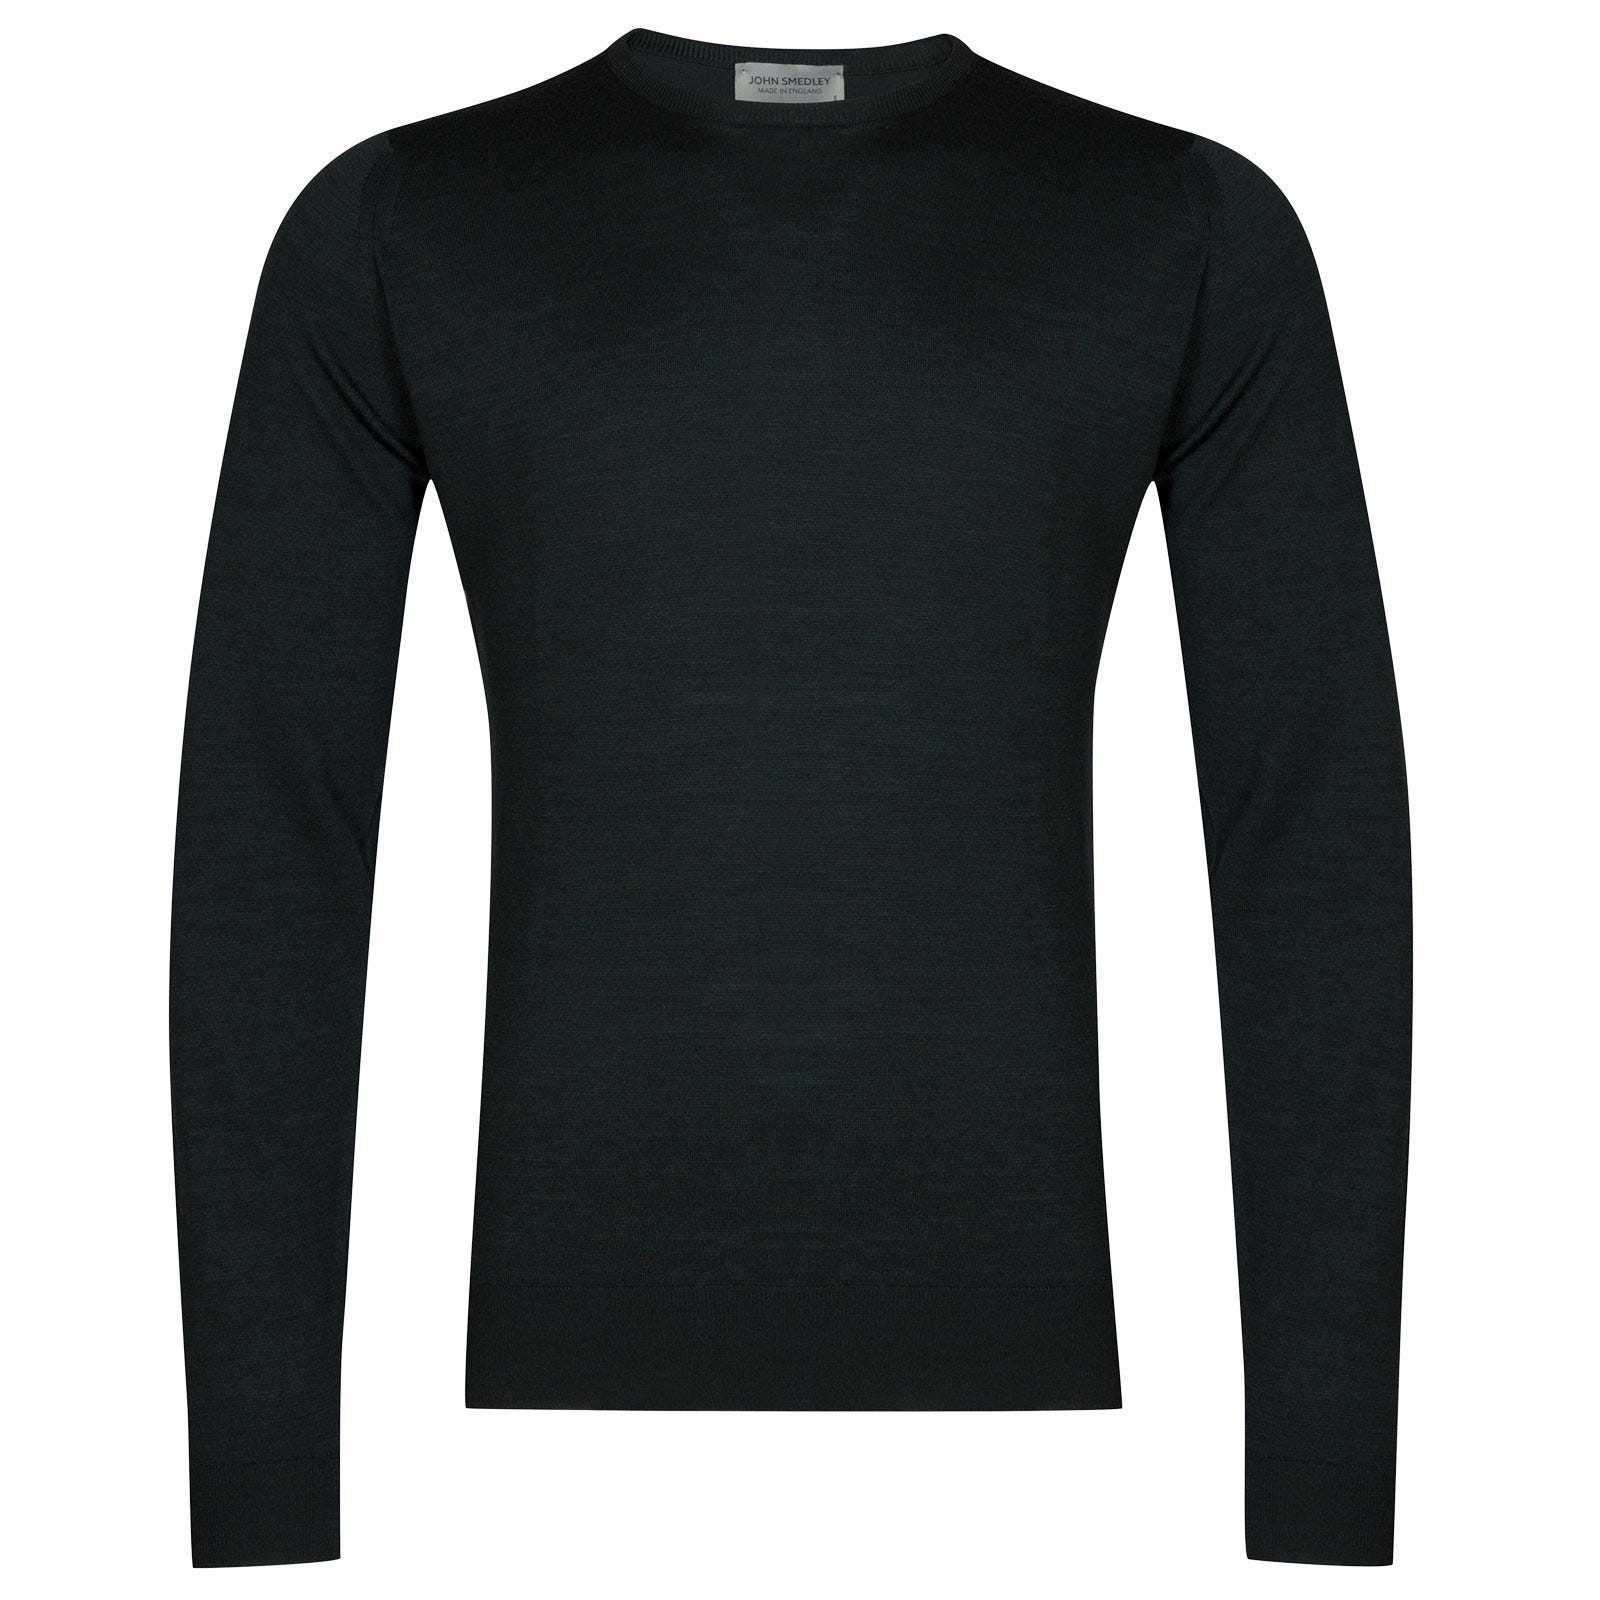 John Smedley Lundy Merino Wool Pullover in Racing Green-XL